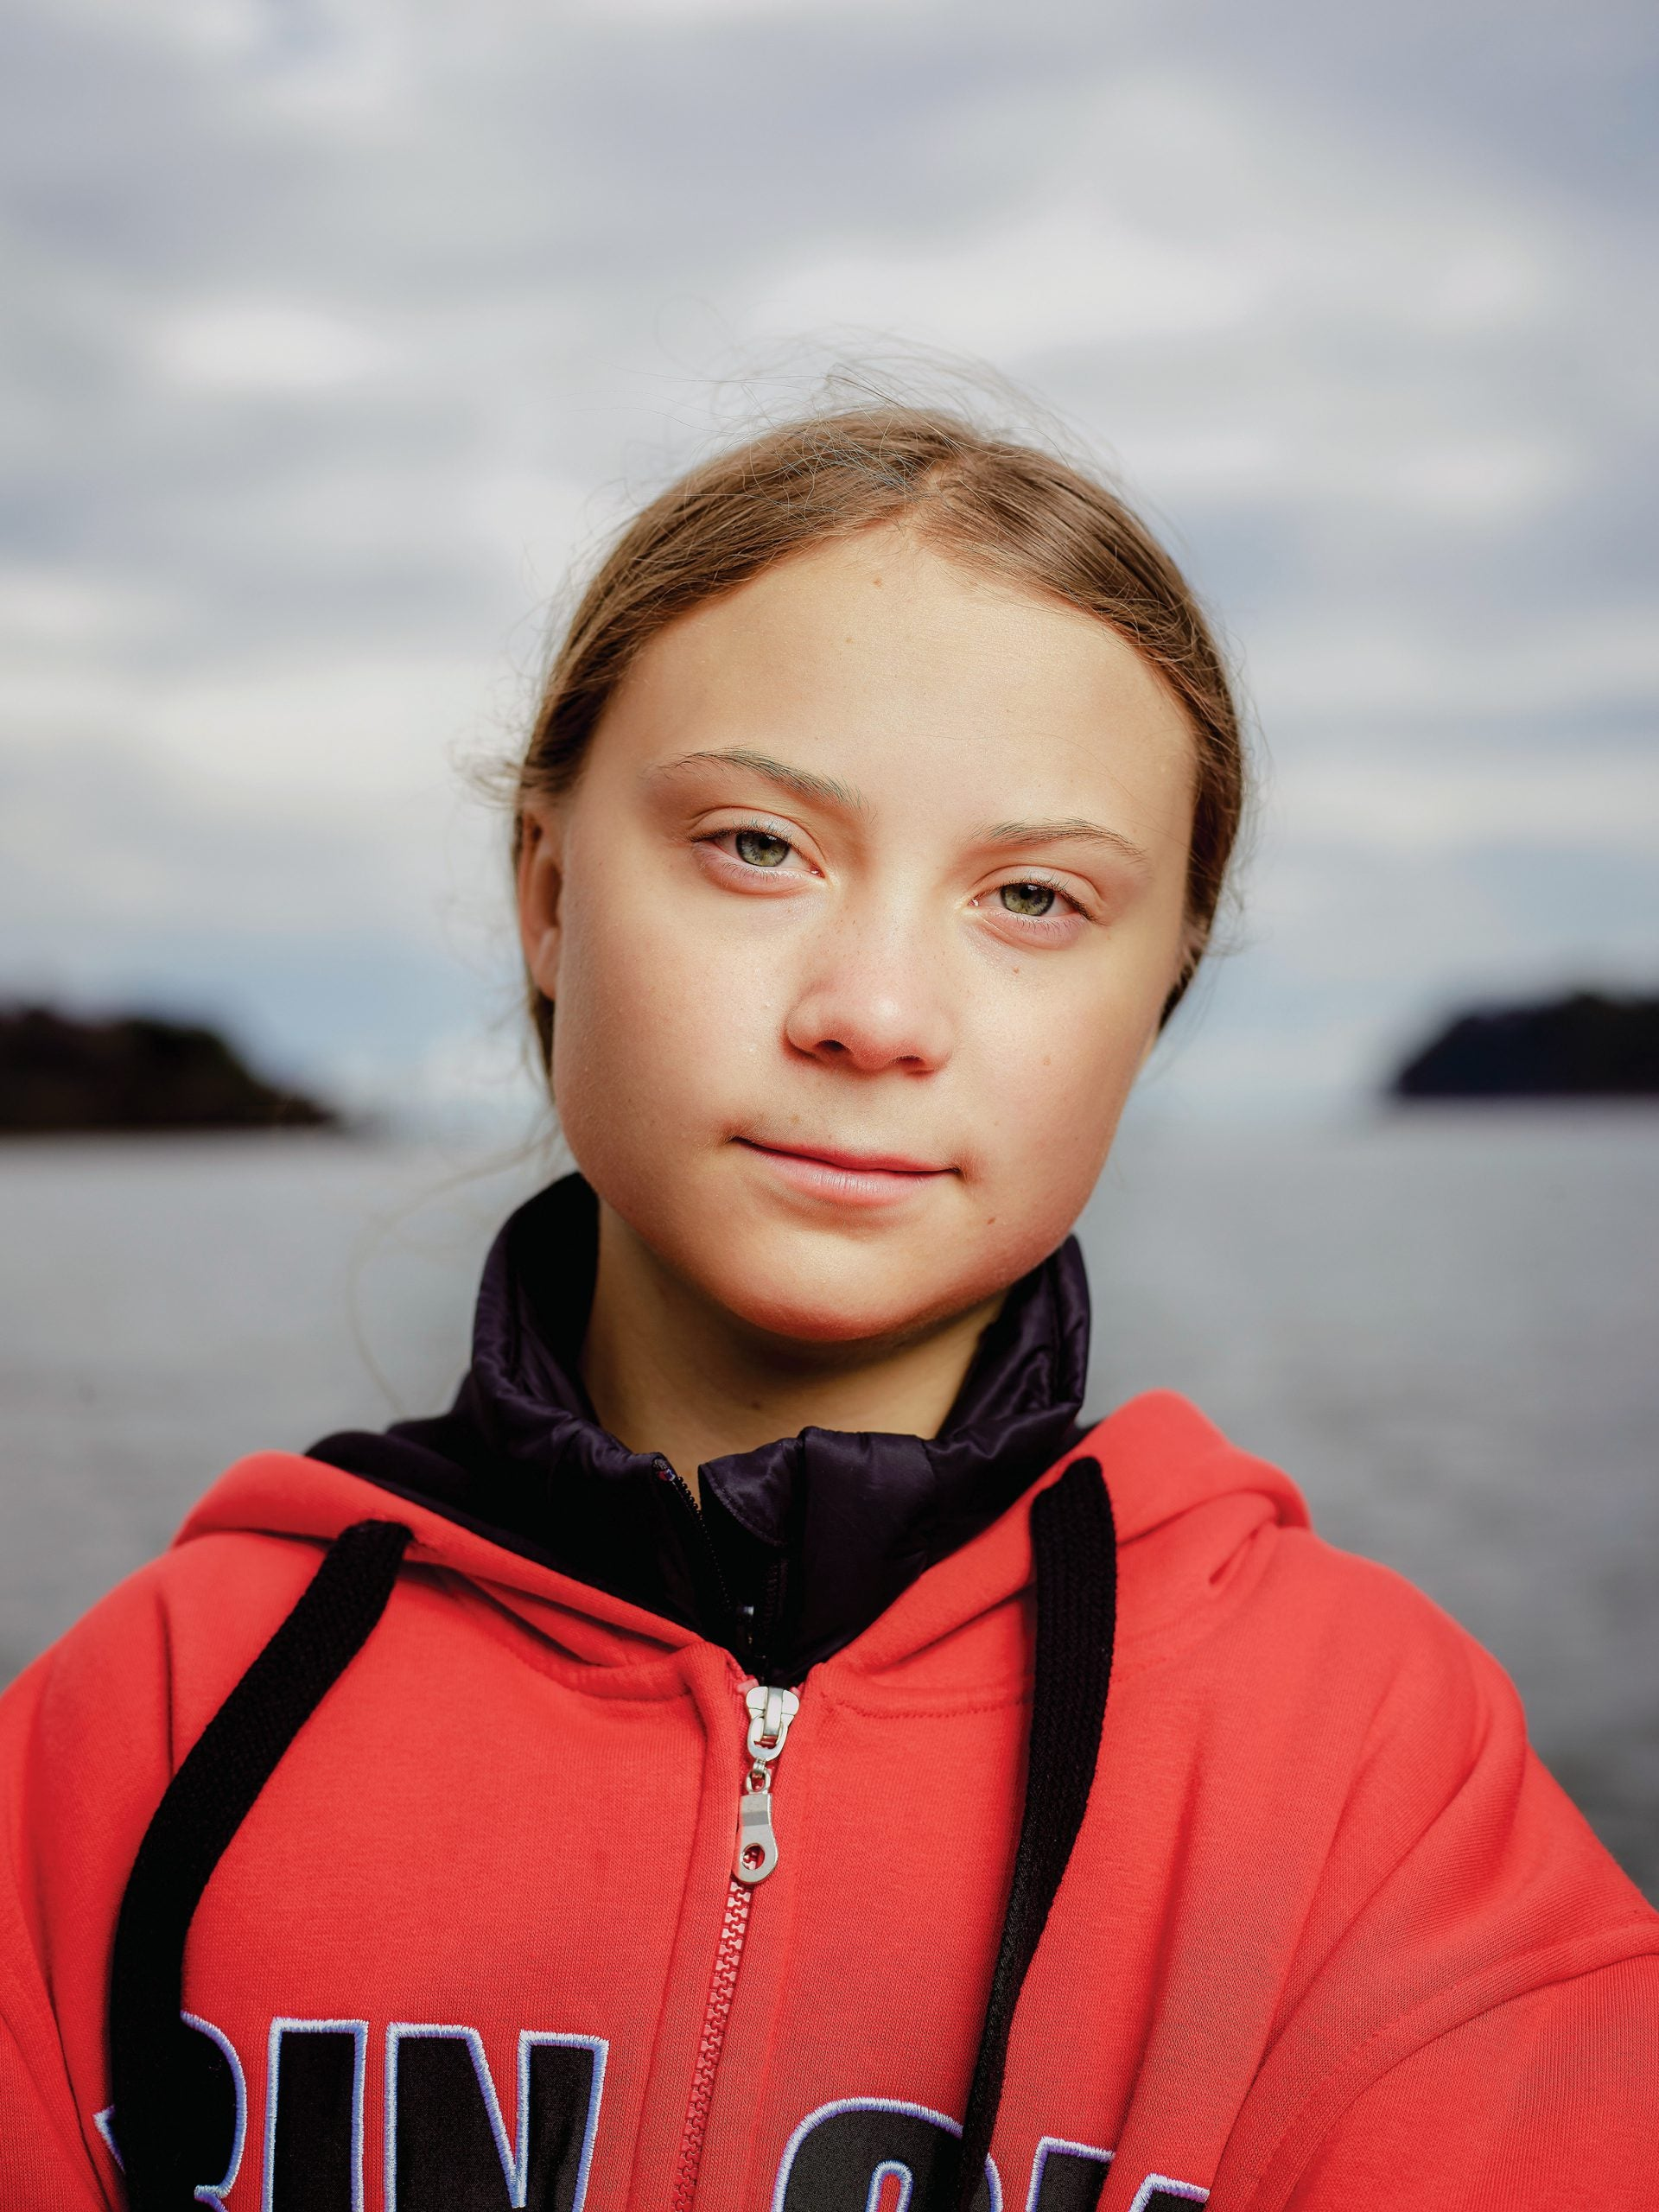 Greta against the world: how a 17-year-old activist took on climate-change denying leaders